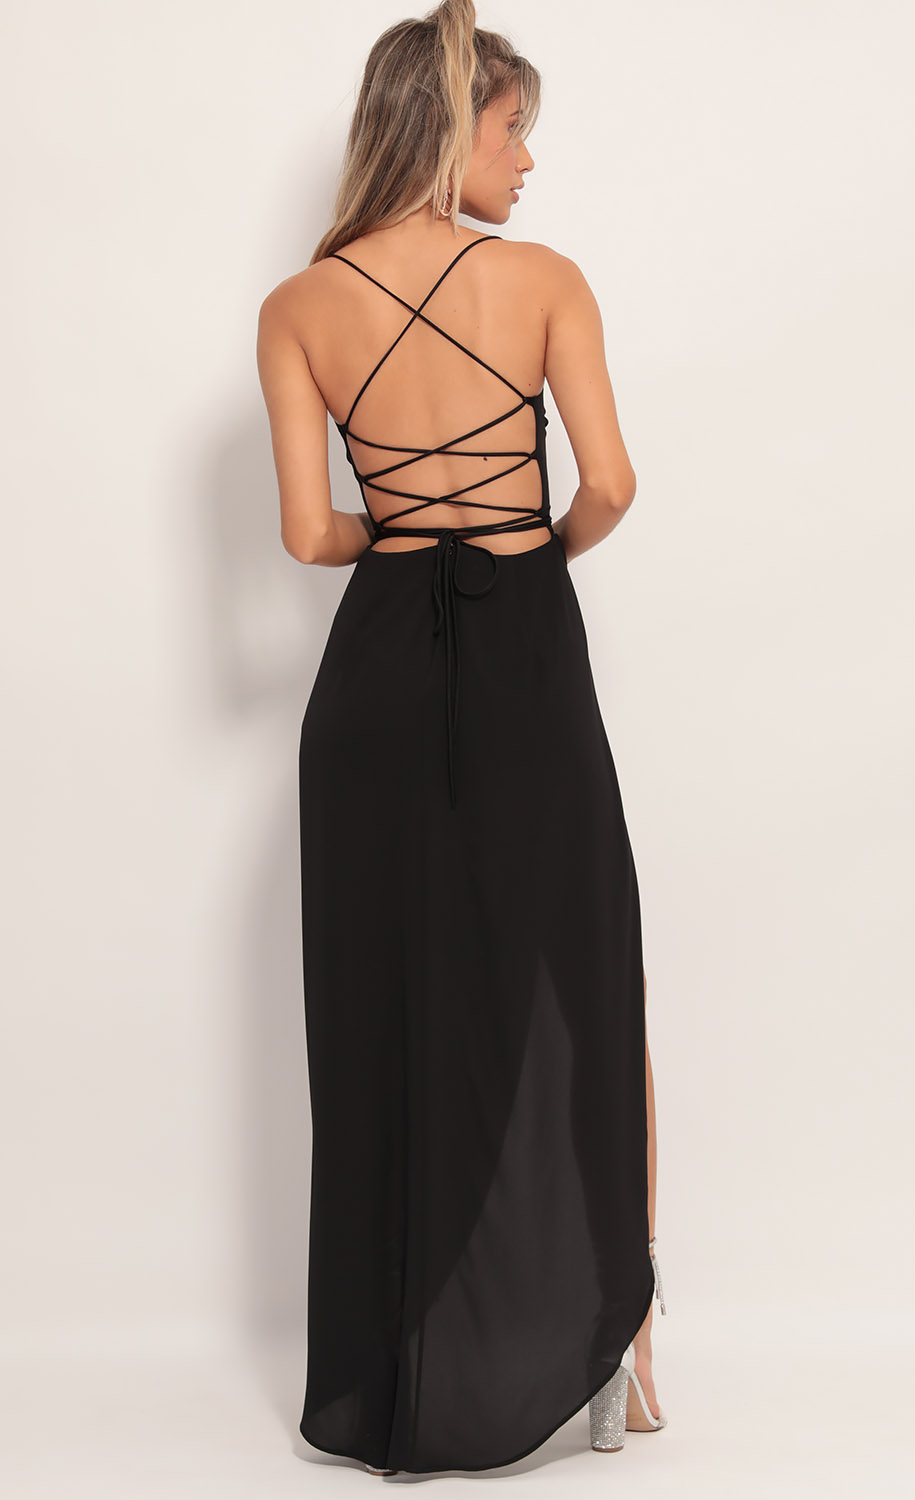 Chiffon Luxe Maxi Dress in Black